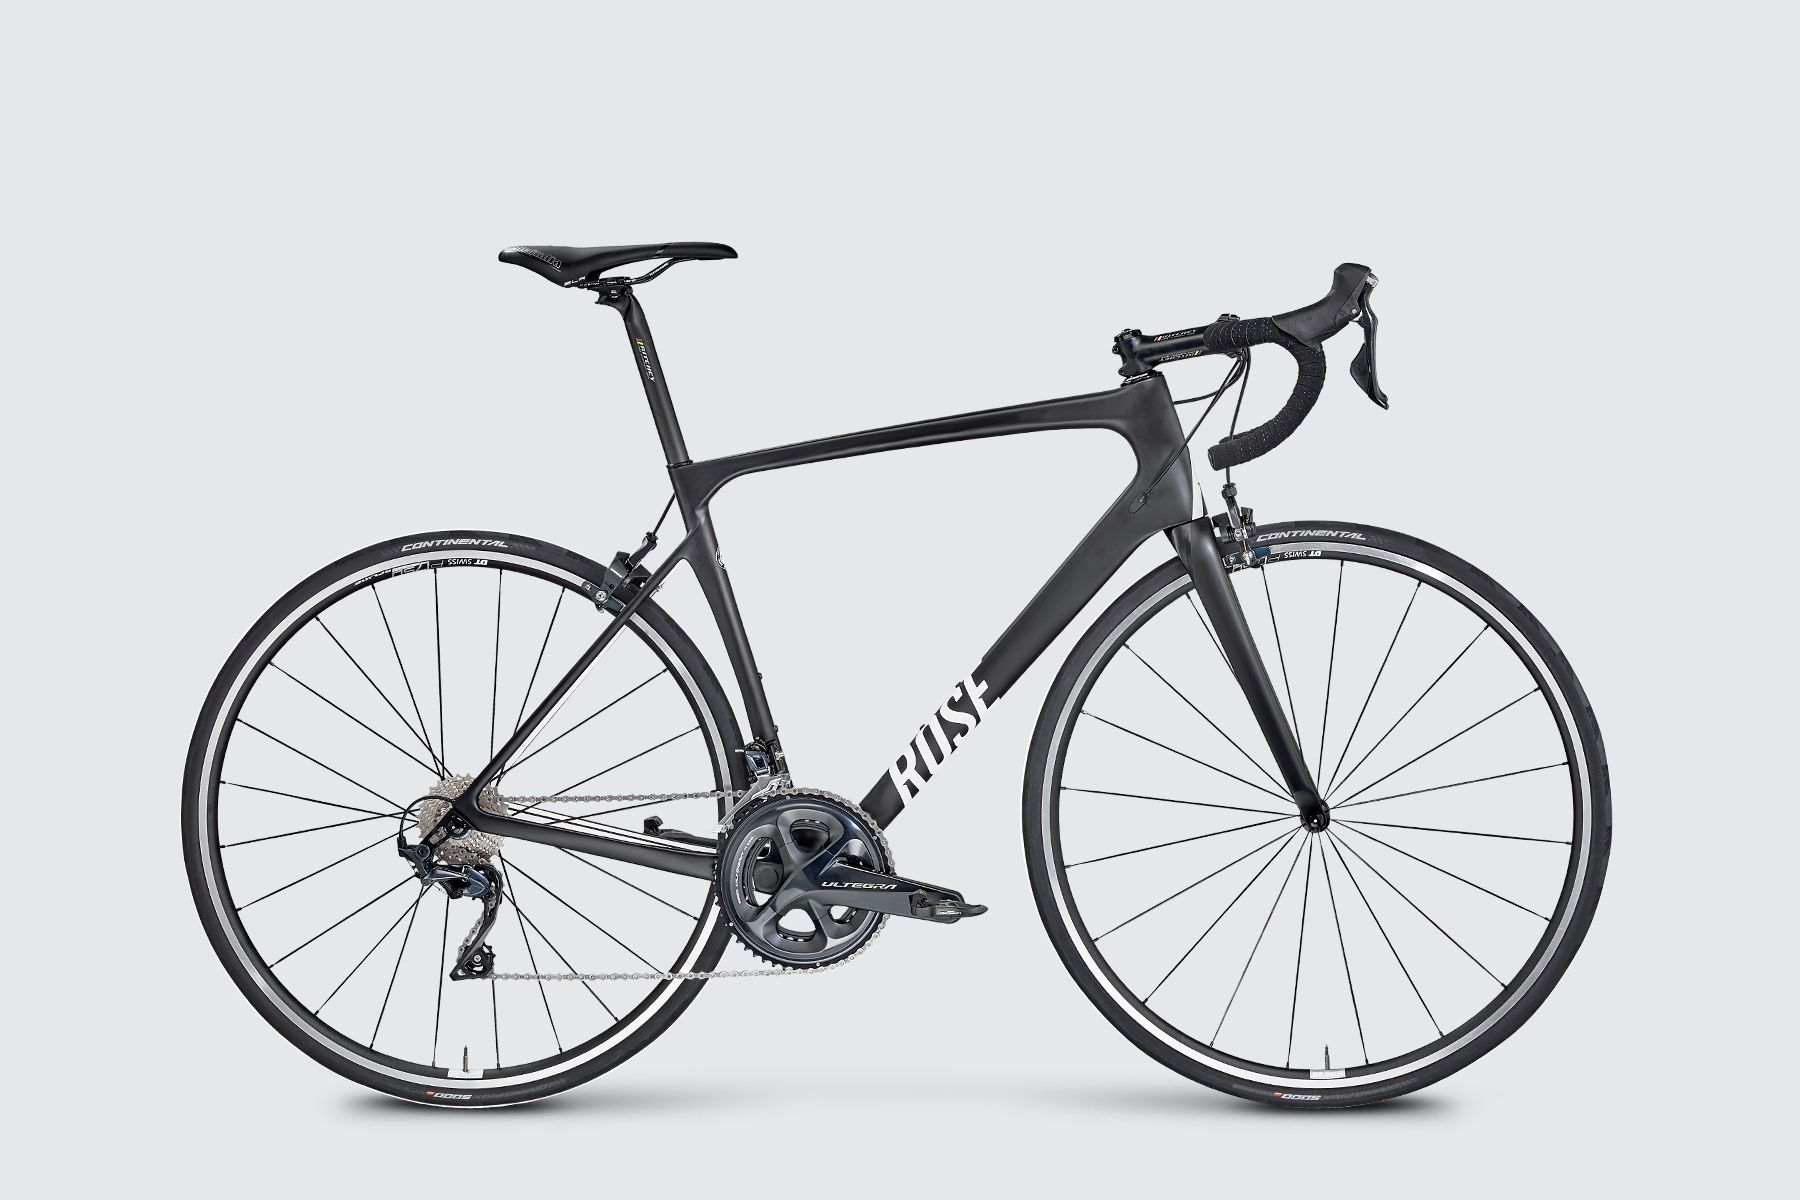 The ROSE X-LITE FOUR Ultegra | Your dream bike - exclusively available at ROSE Bikes